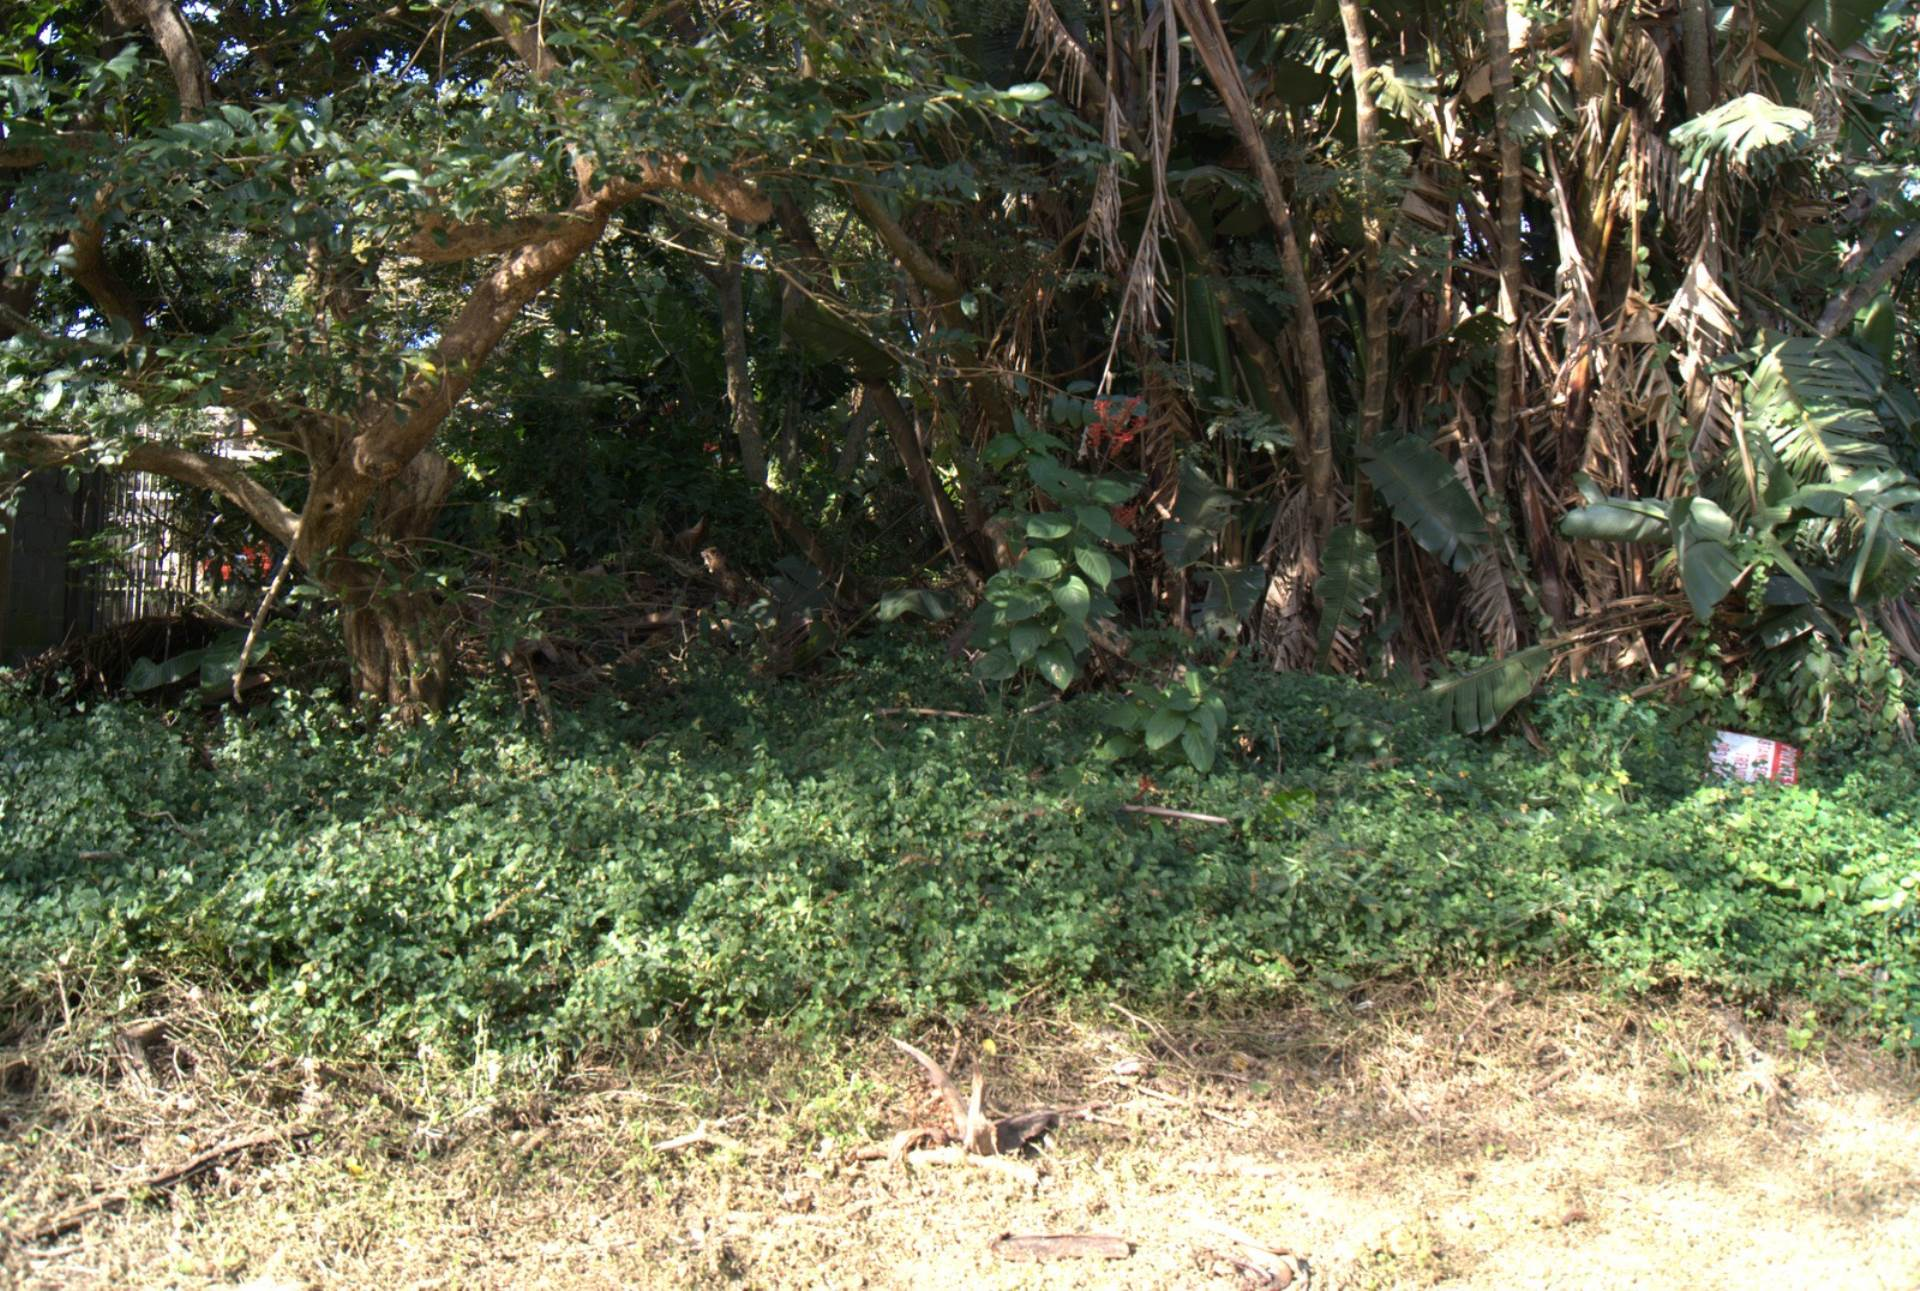 Vacant Land Residential For Sale In St Michaels On Sea